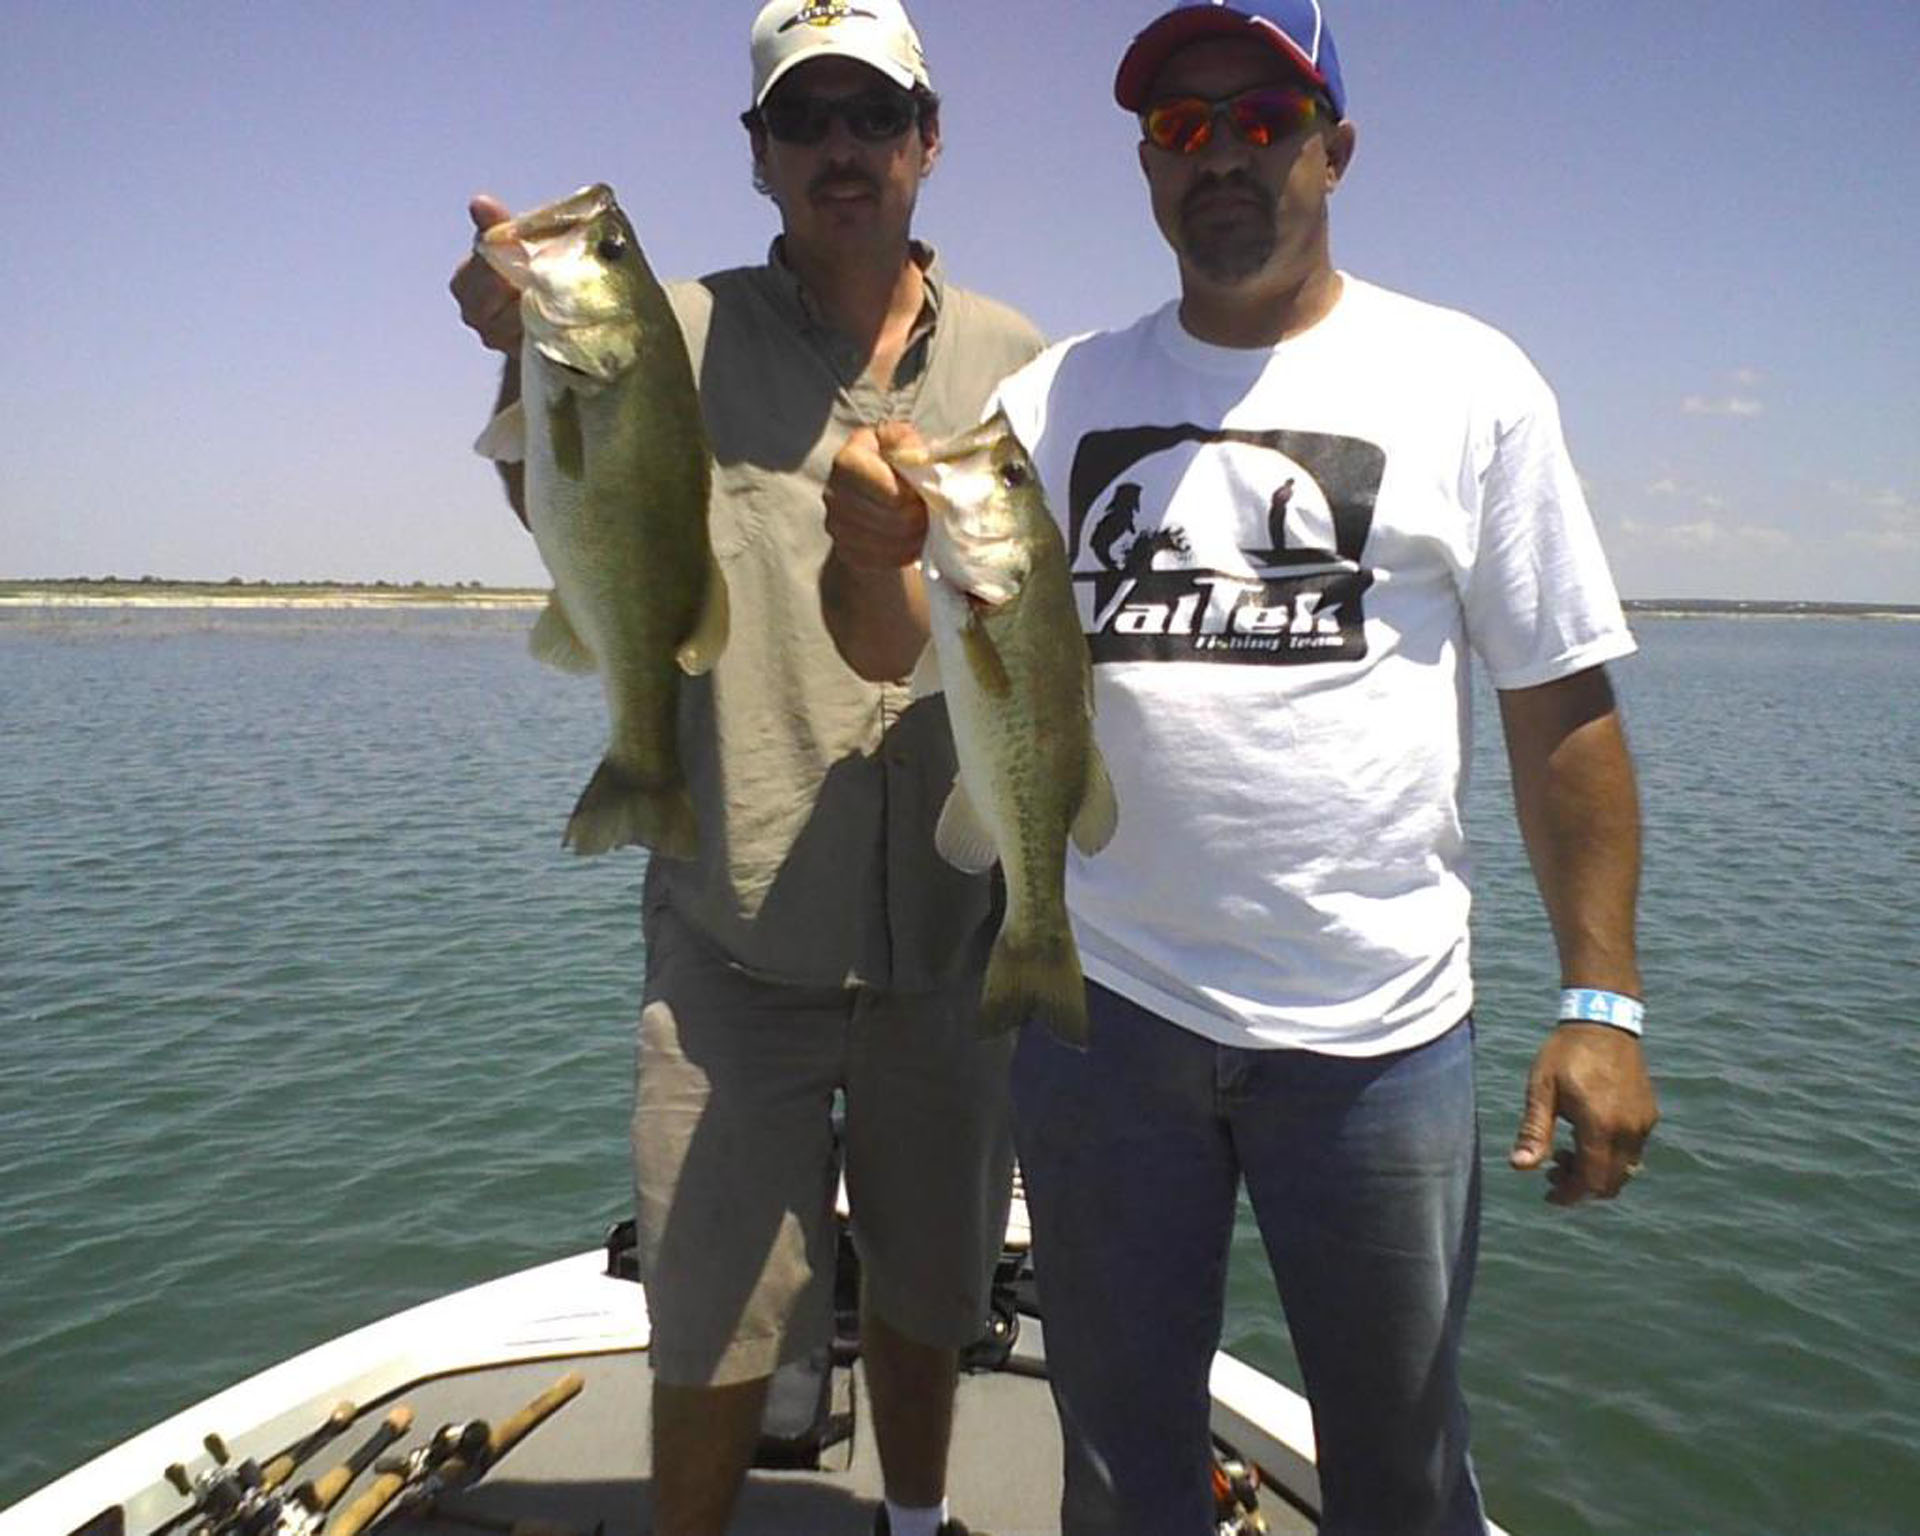 Lake amistad fishing guide amistad bass fishing guide lake for Fishing license in texas